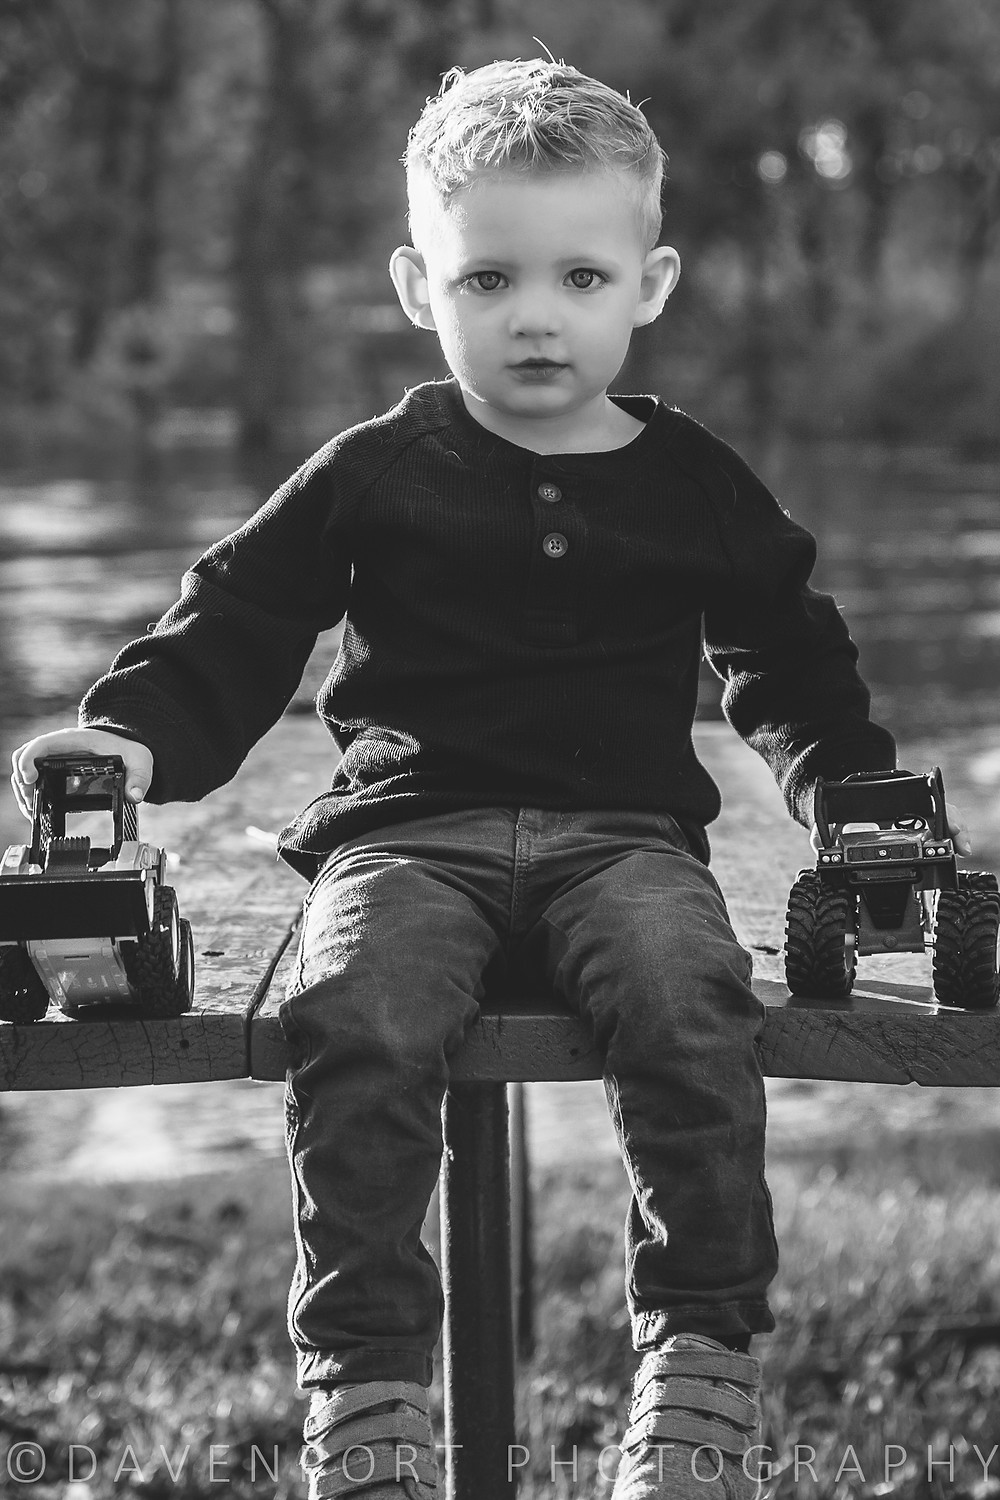 Children & Family Photography in Twin Cities MN